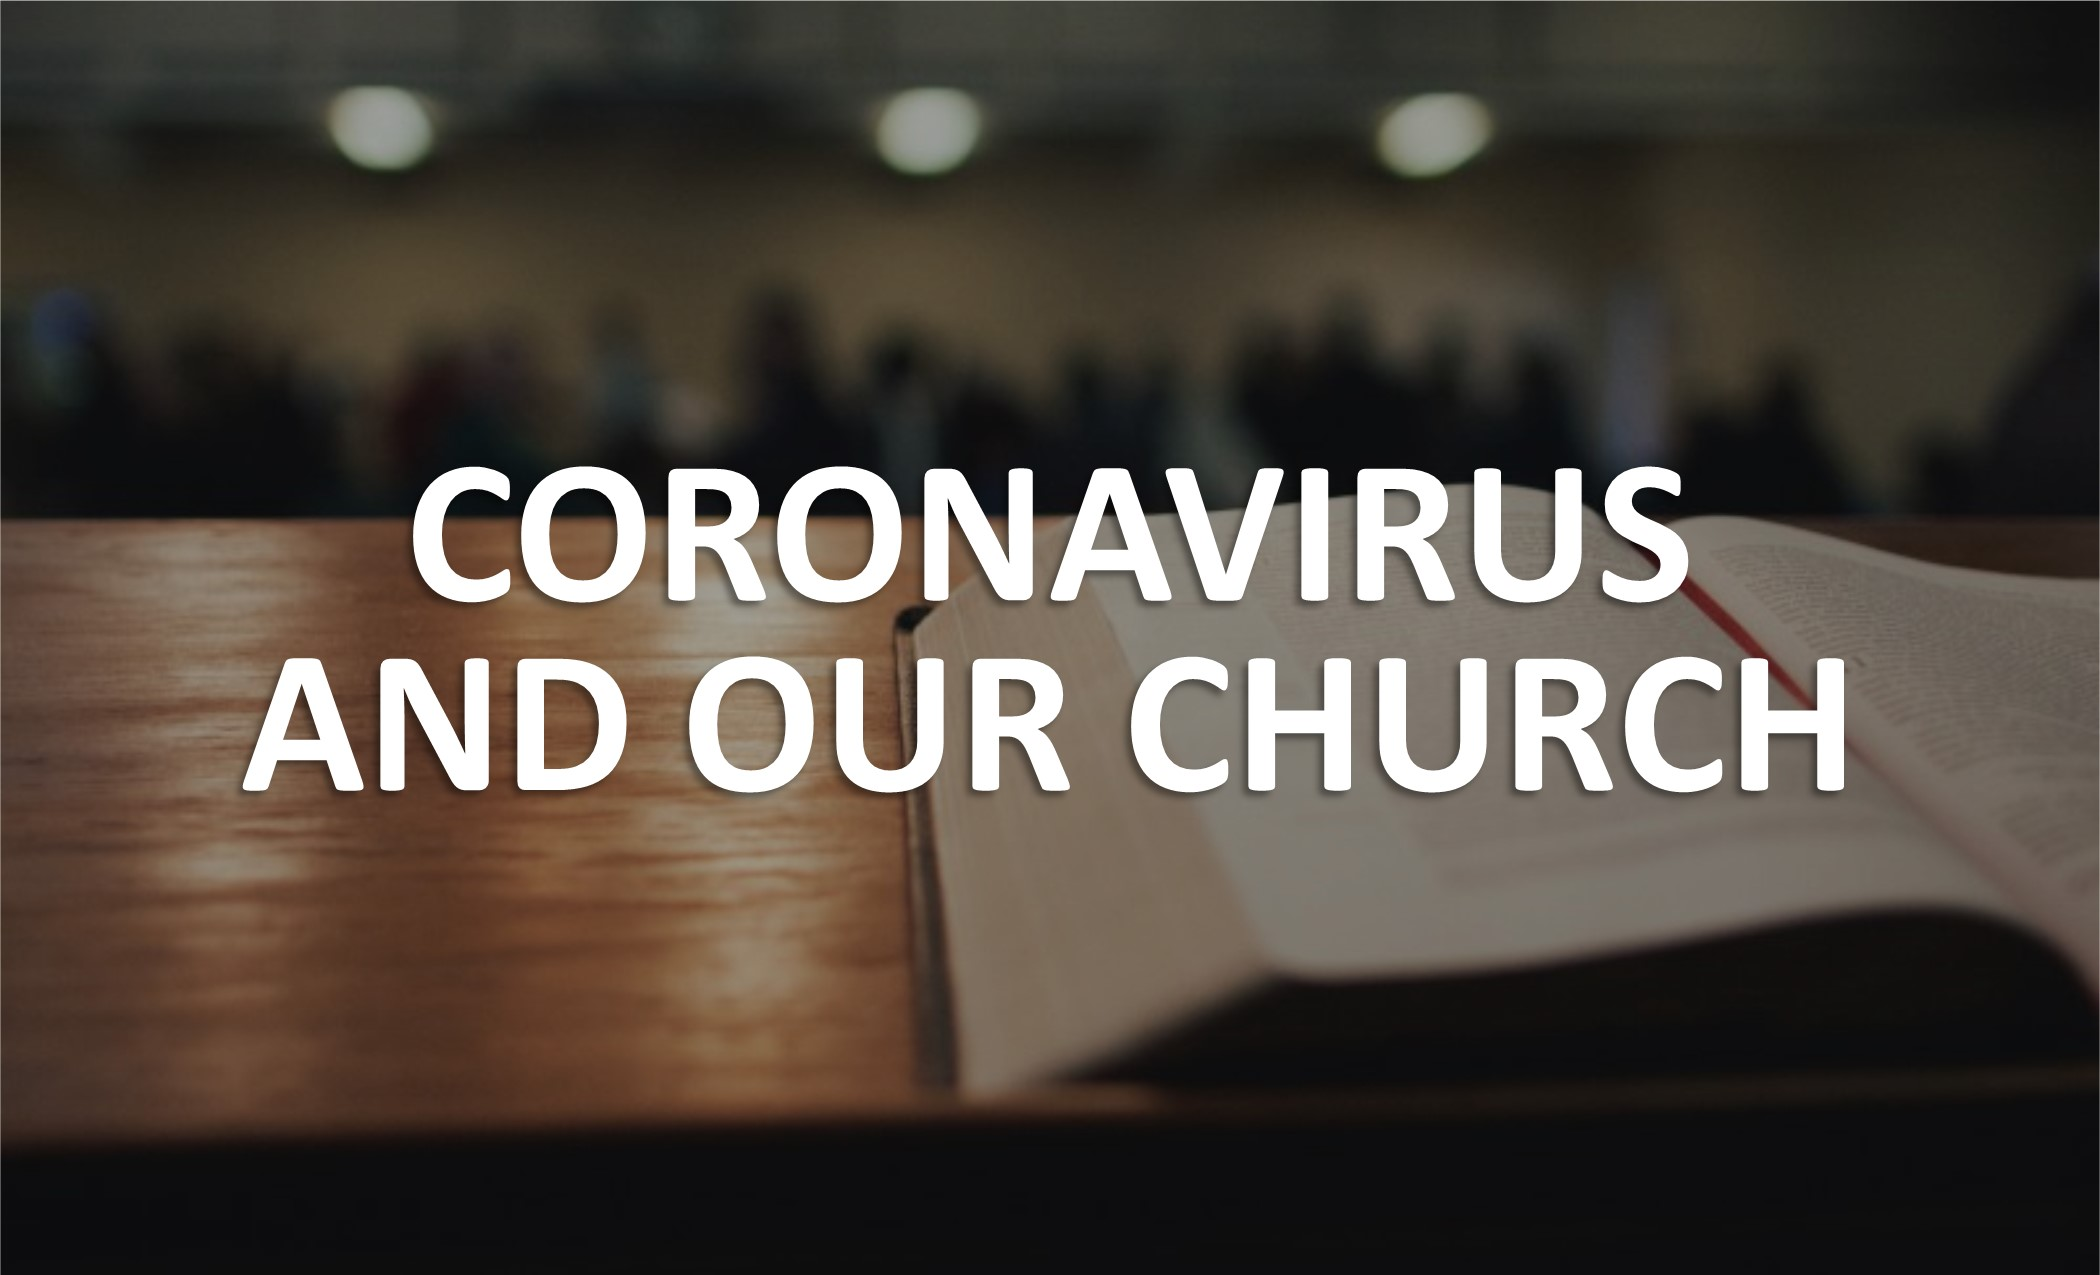 Coronavirus and Our Church